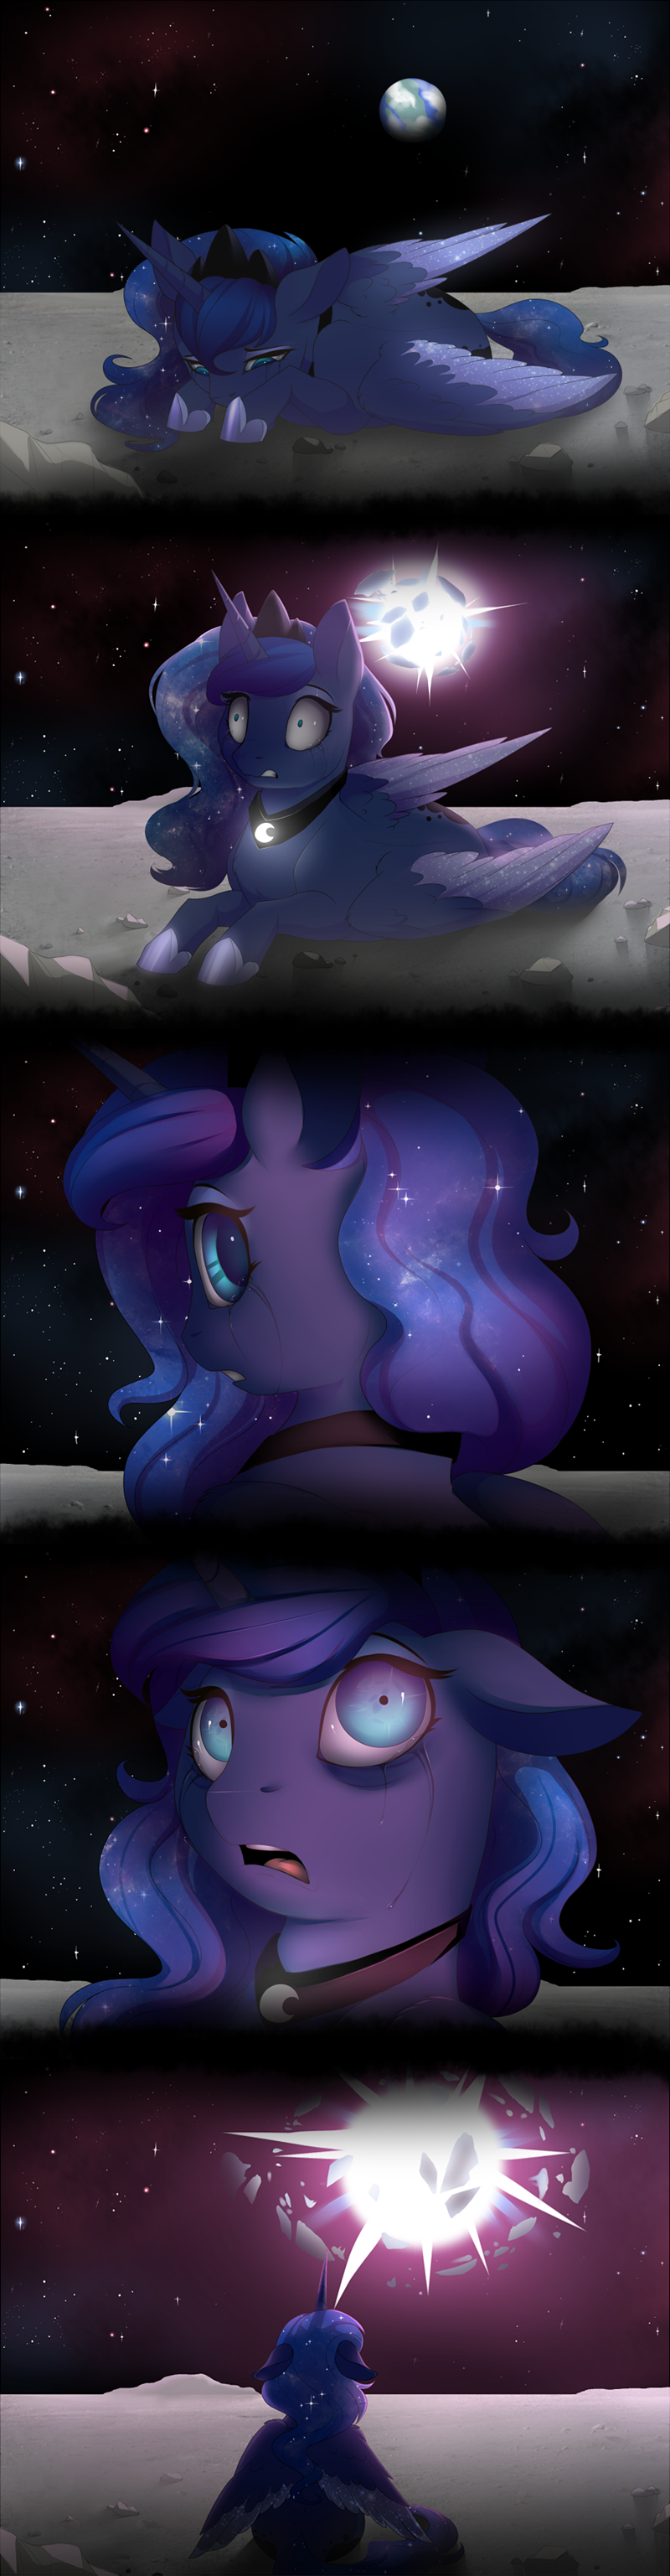 comic princess luna - 8972519680